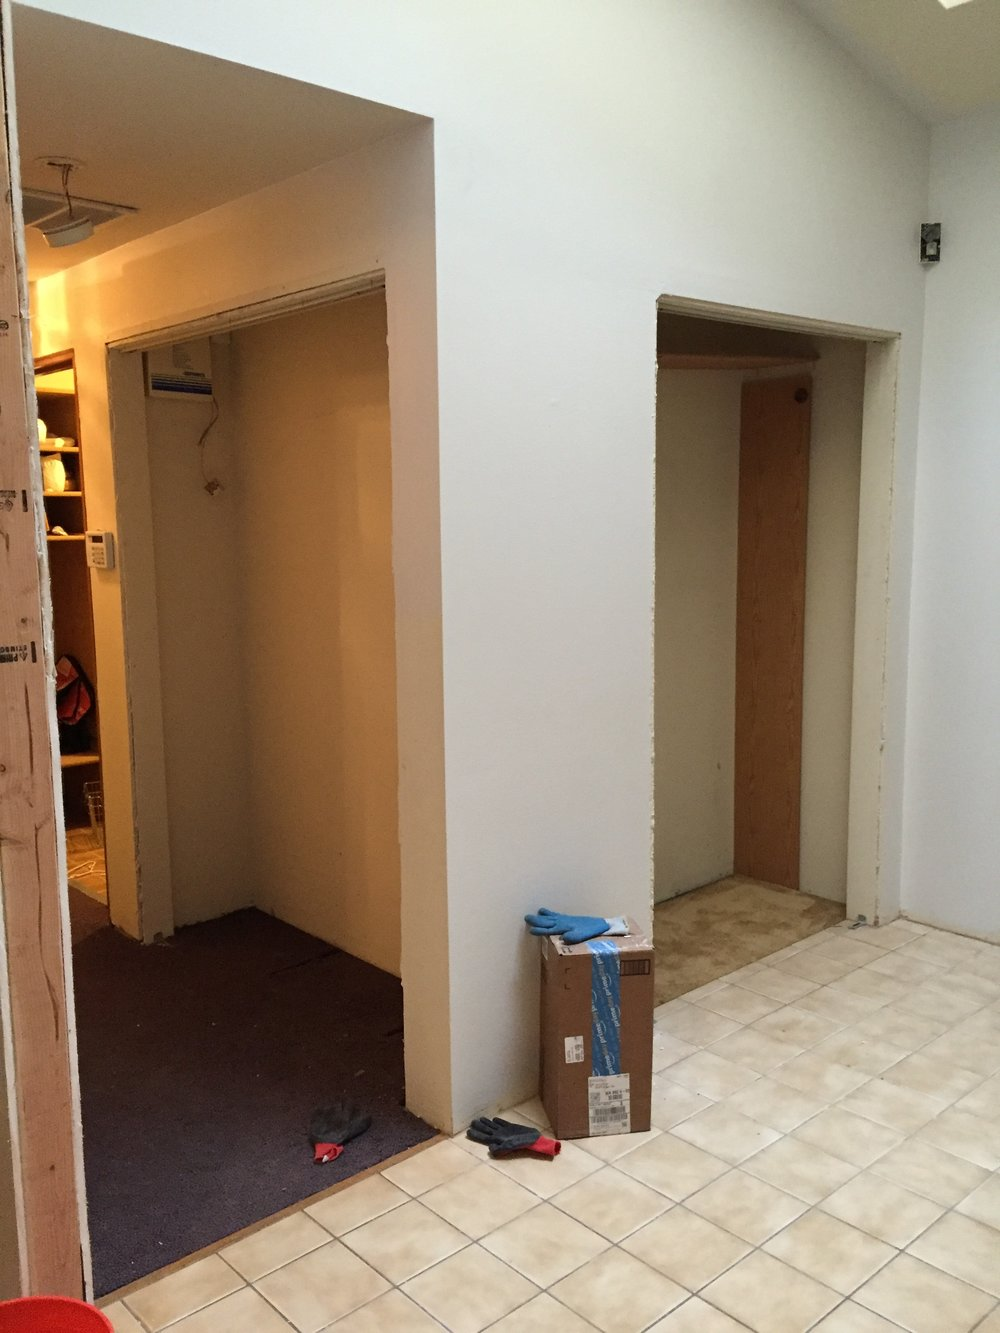 I decided to take out that hall closet to open up the laundry room and make the entry closet larger.